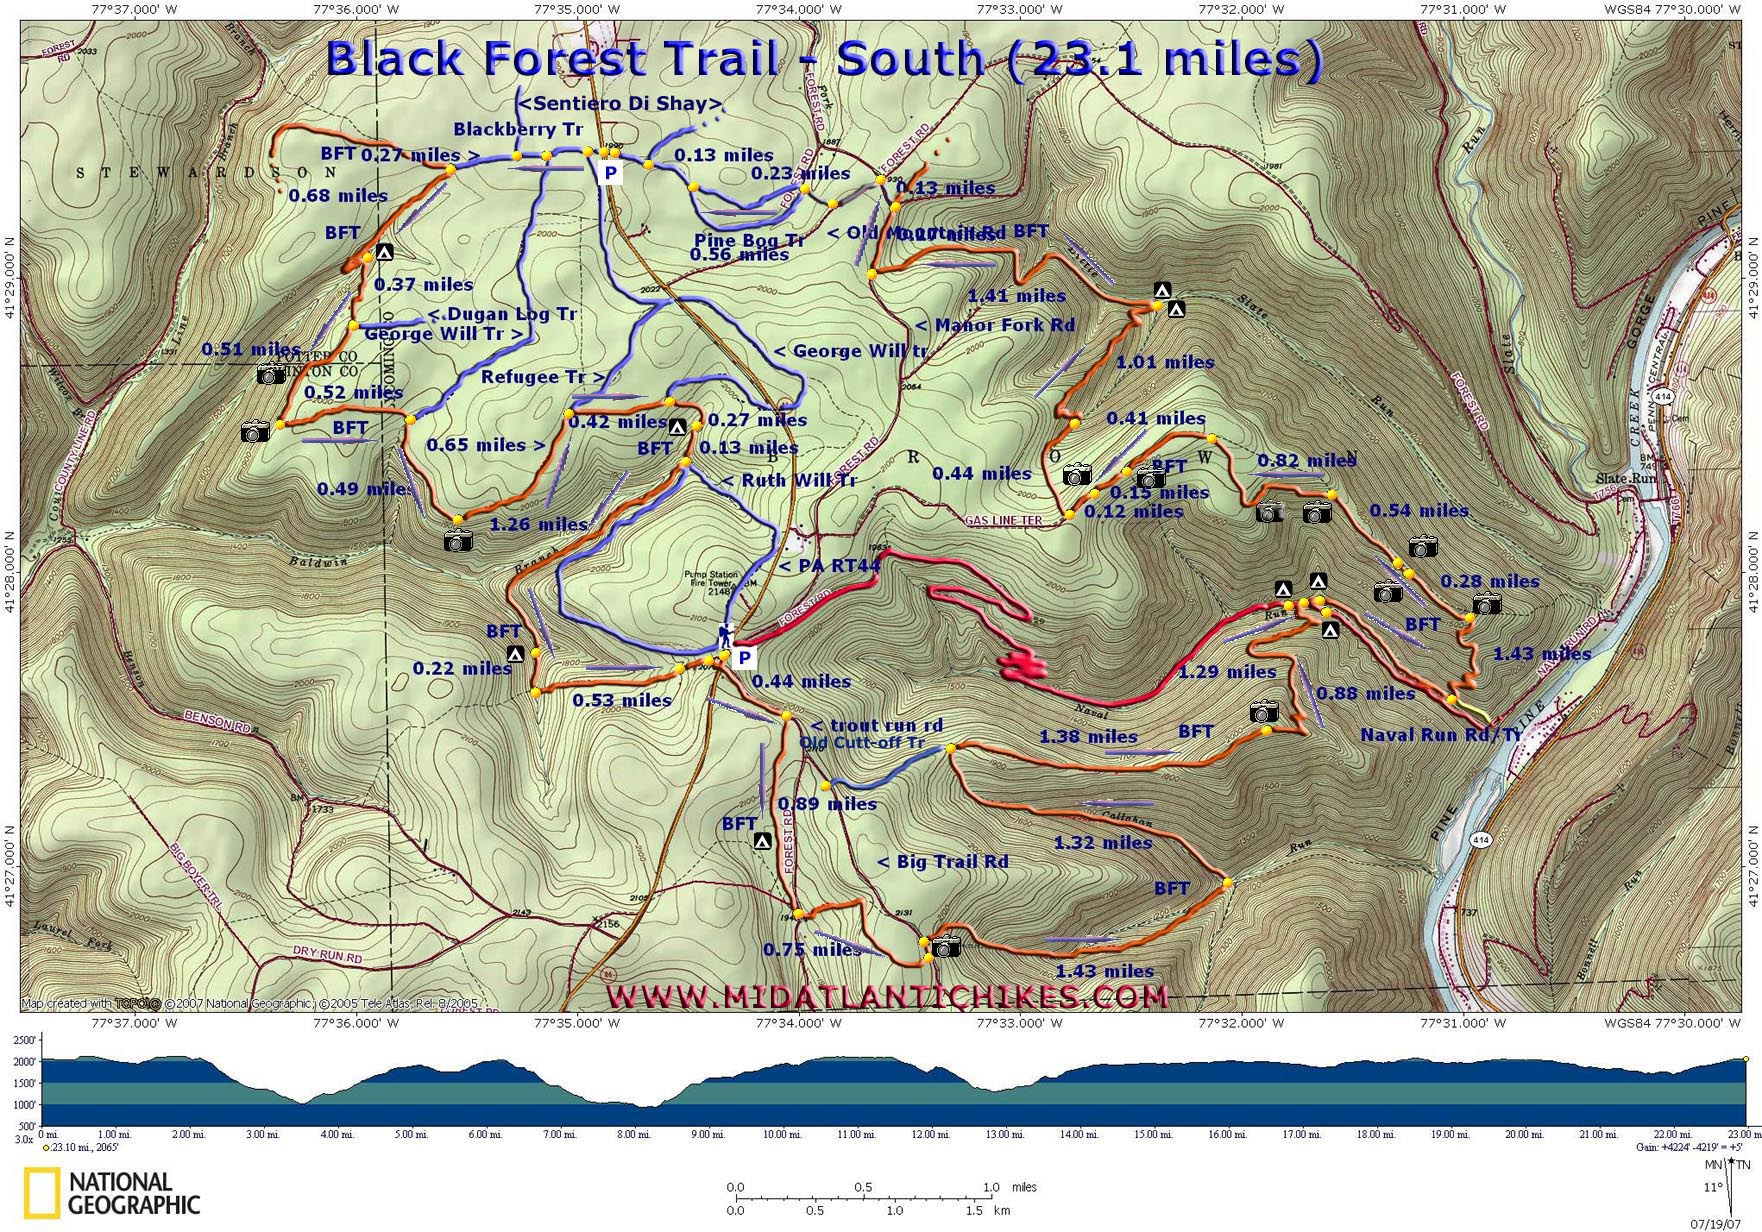 Black Forest Trail South